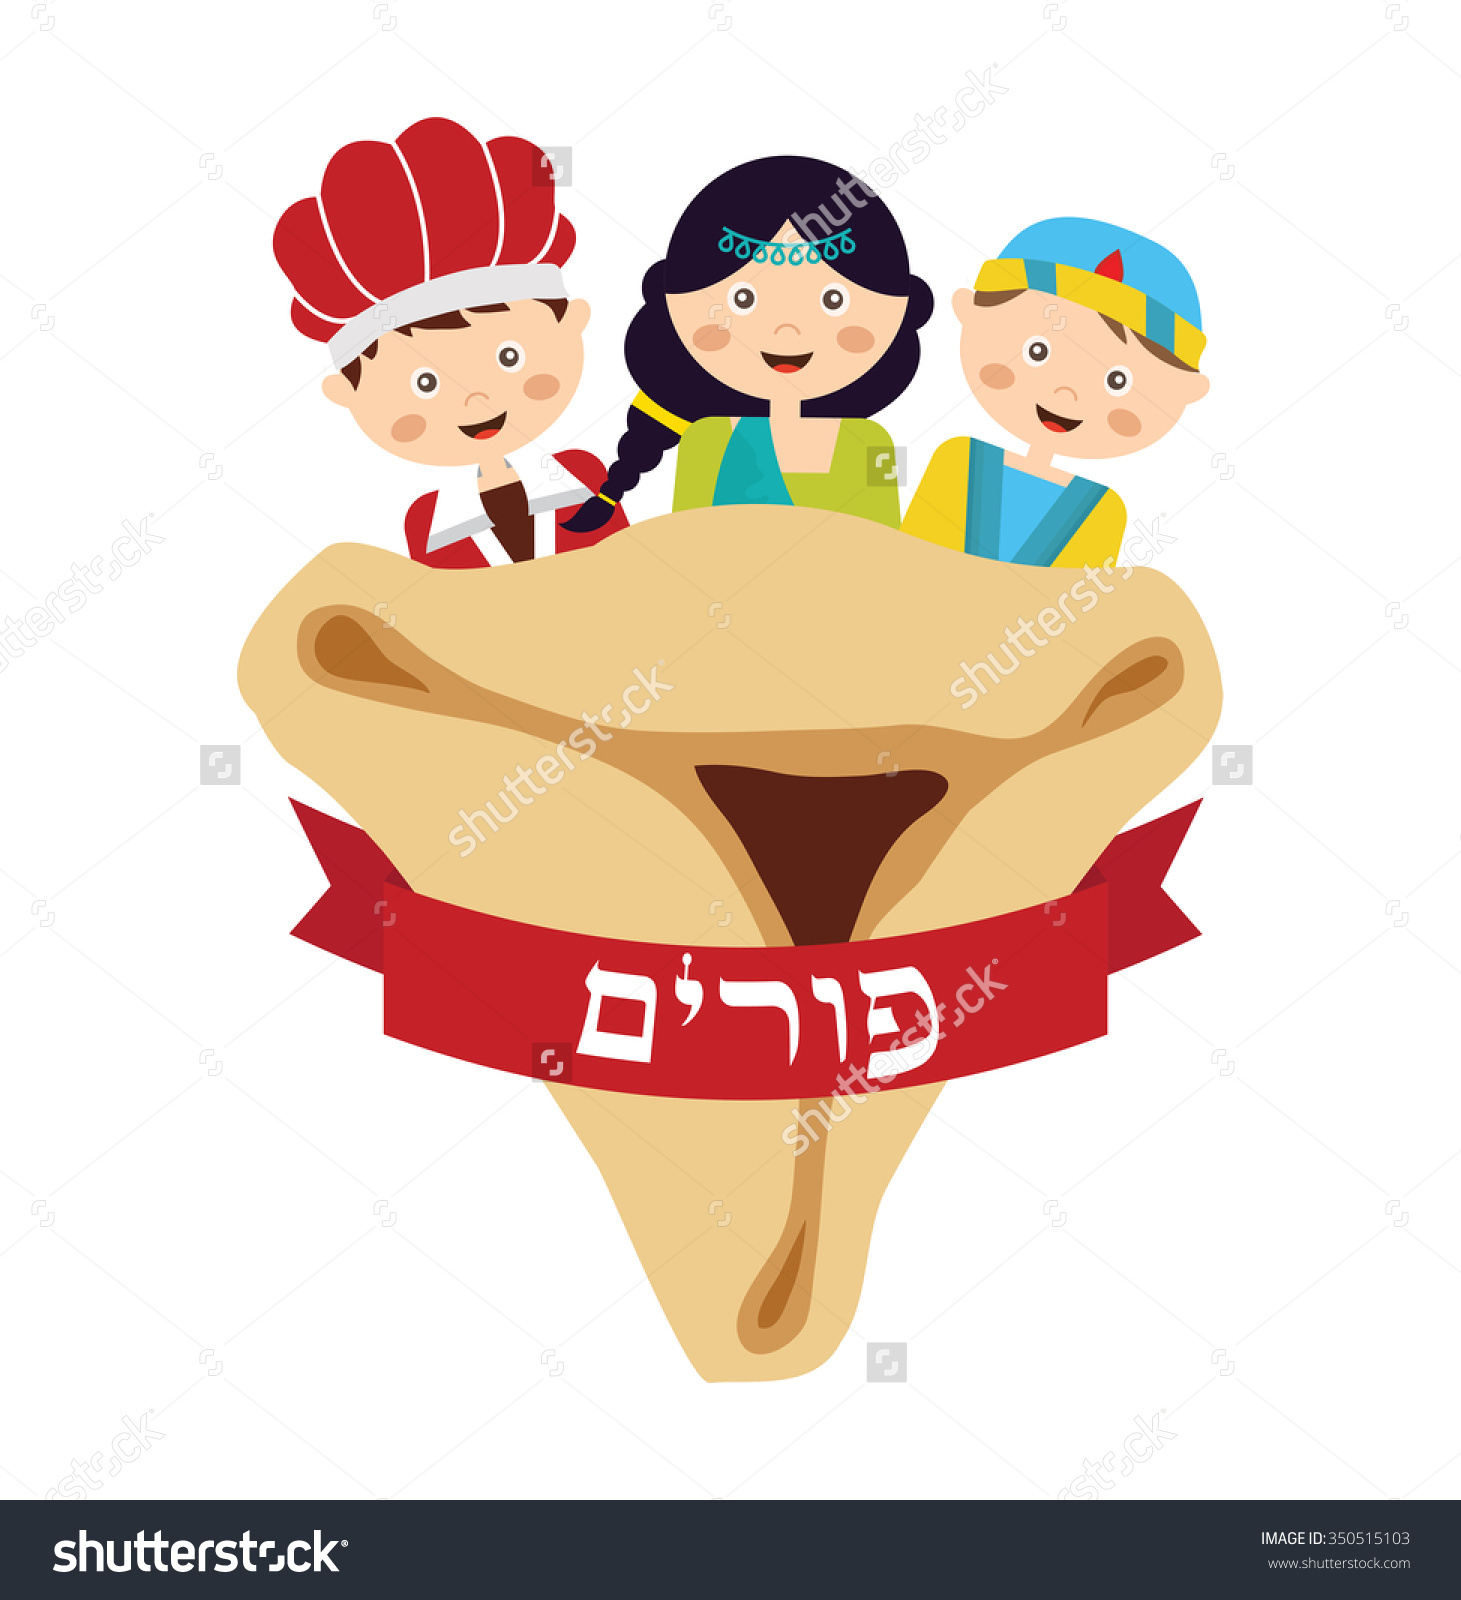 Purim clipart pictures clip royalty free stock 64+ Purim Clipart | ClipartLook clip royalty free stock